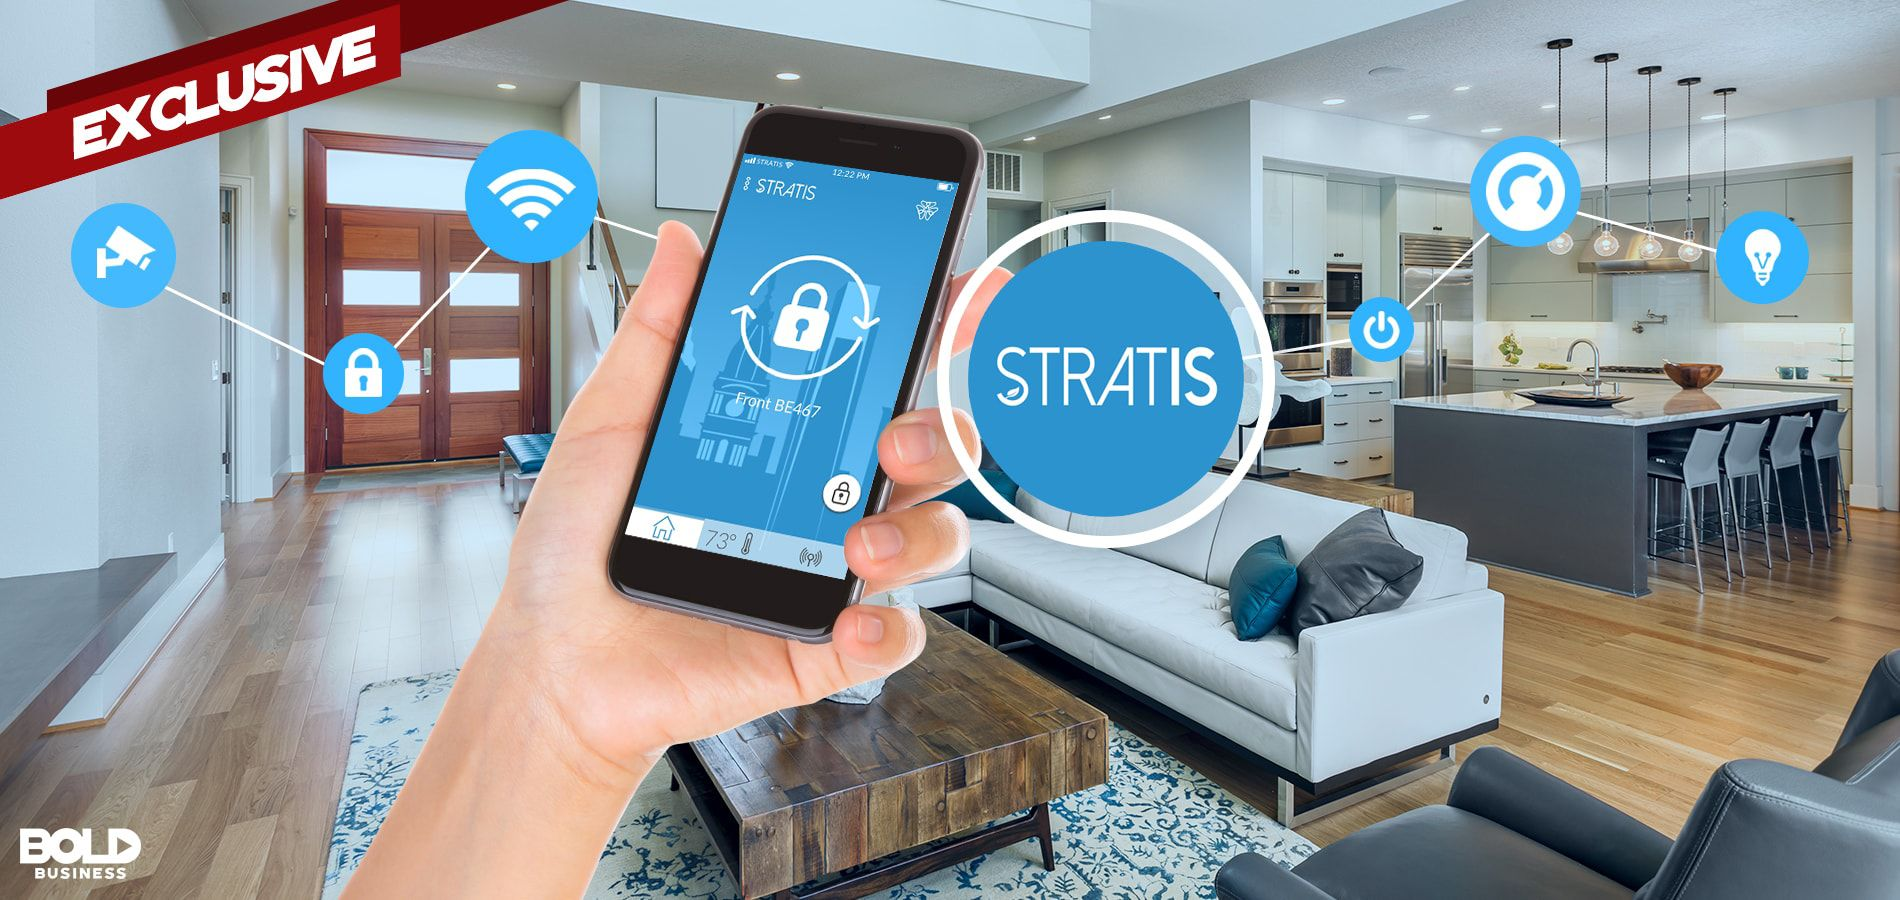 StratIS Energy-Efficient Smart Home